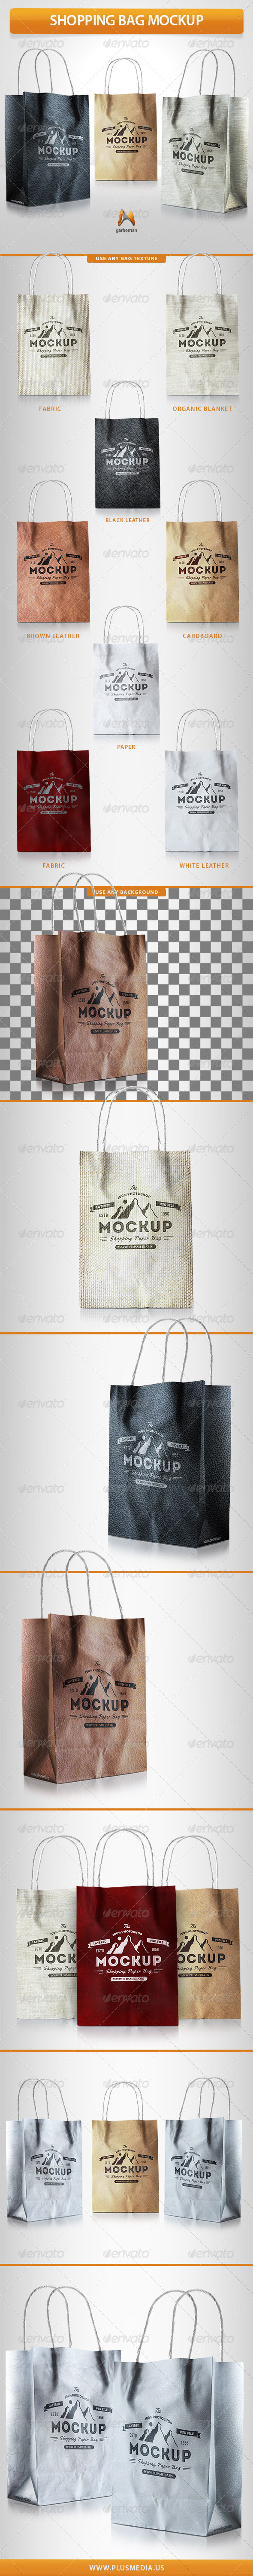 GraphicRiver Shopping Bag Mockup 7709318